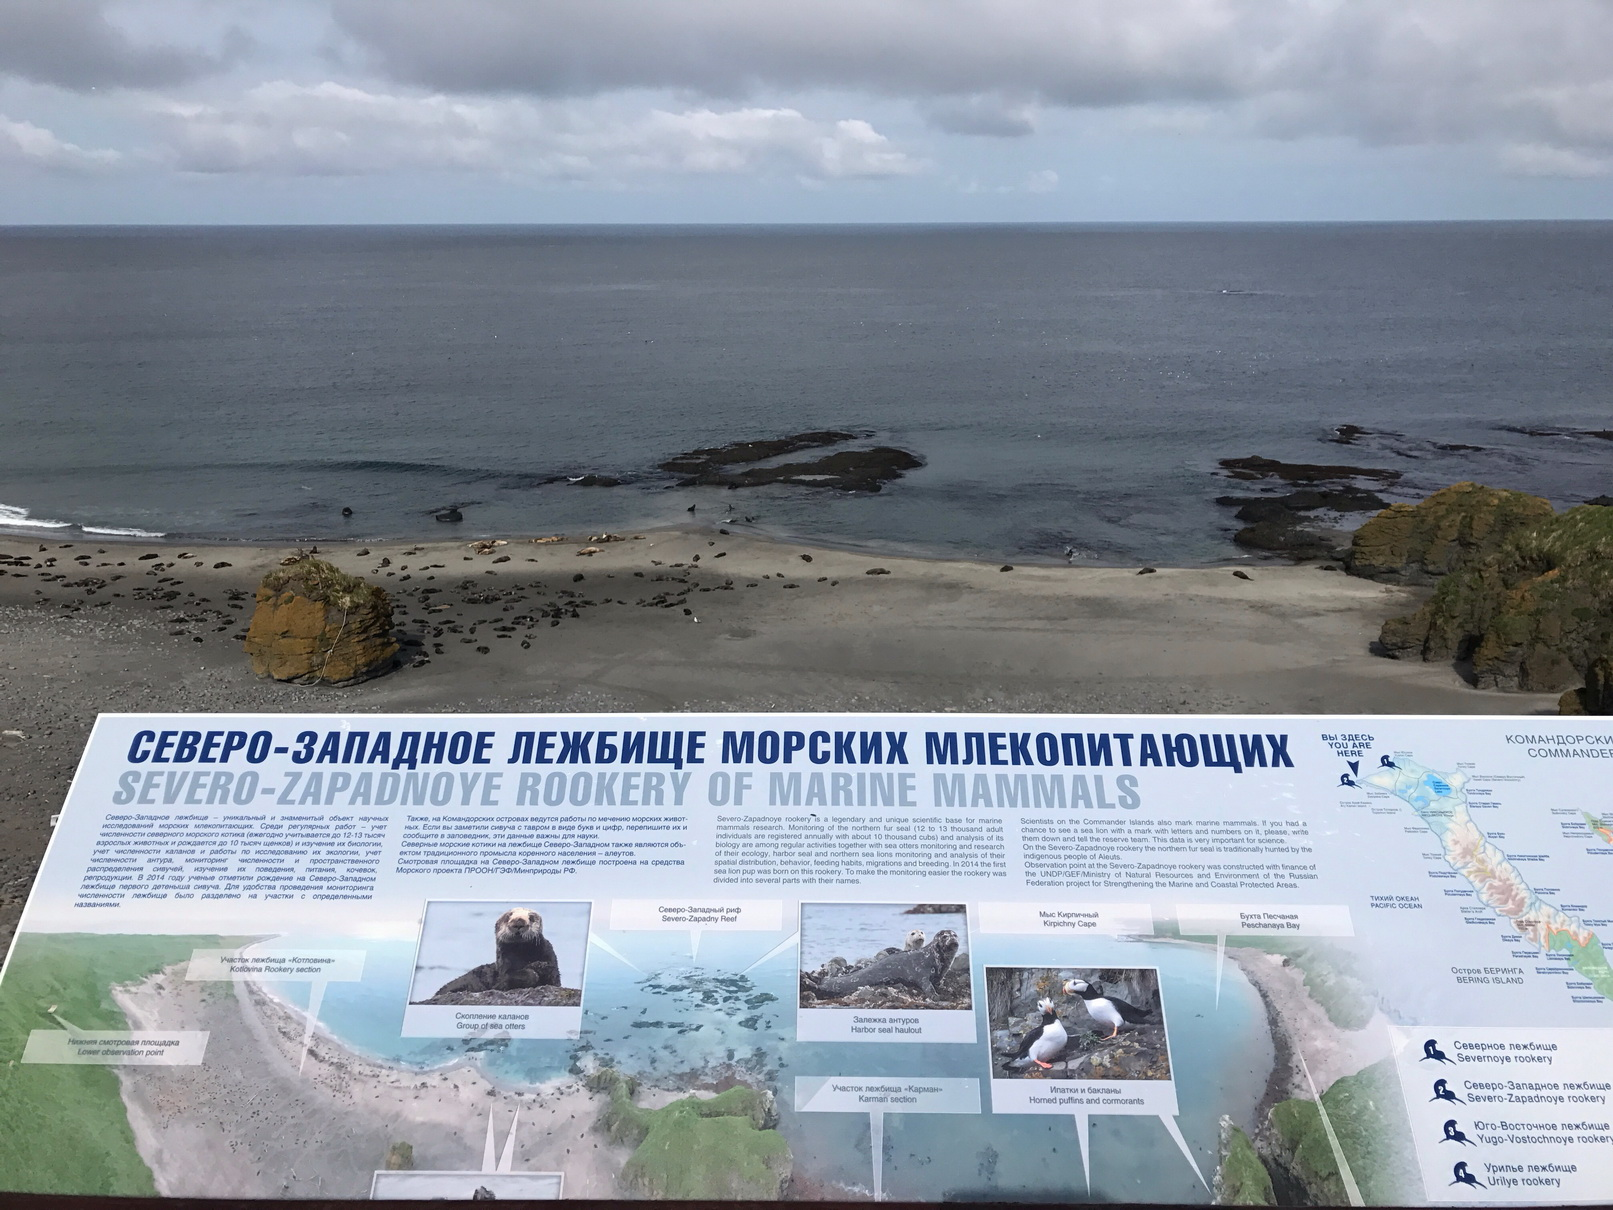 Information boards and view on the rookery. Photo by Evgeny Mamaev